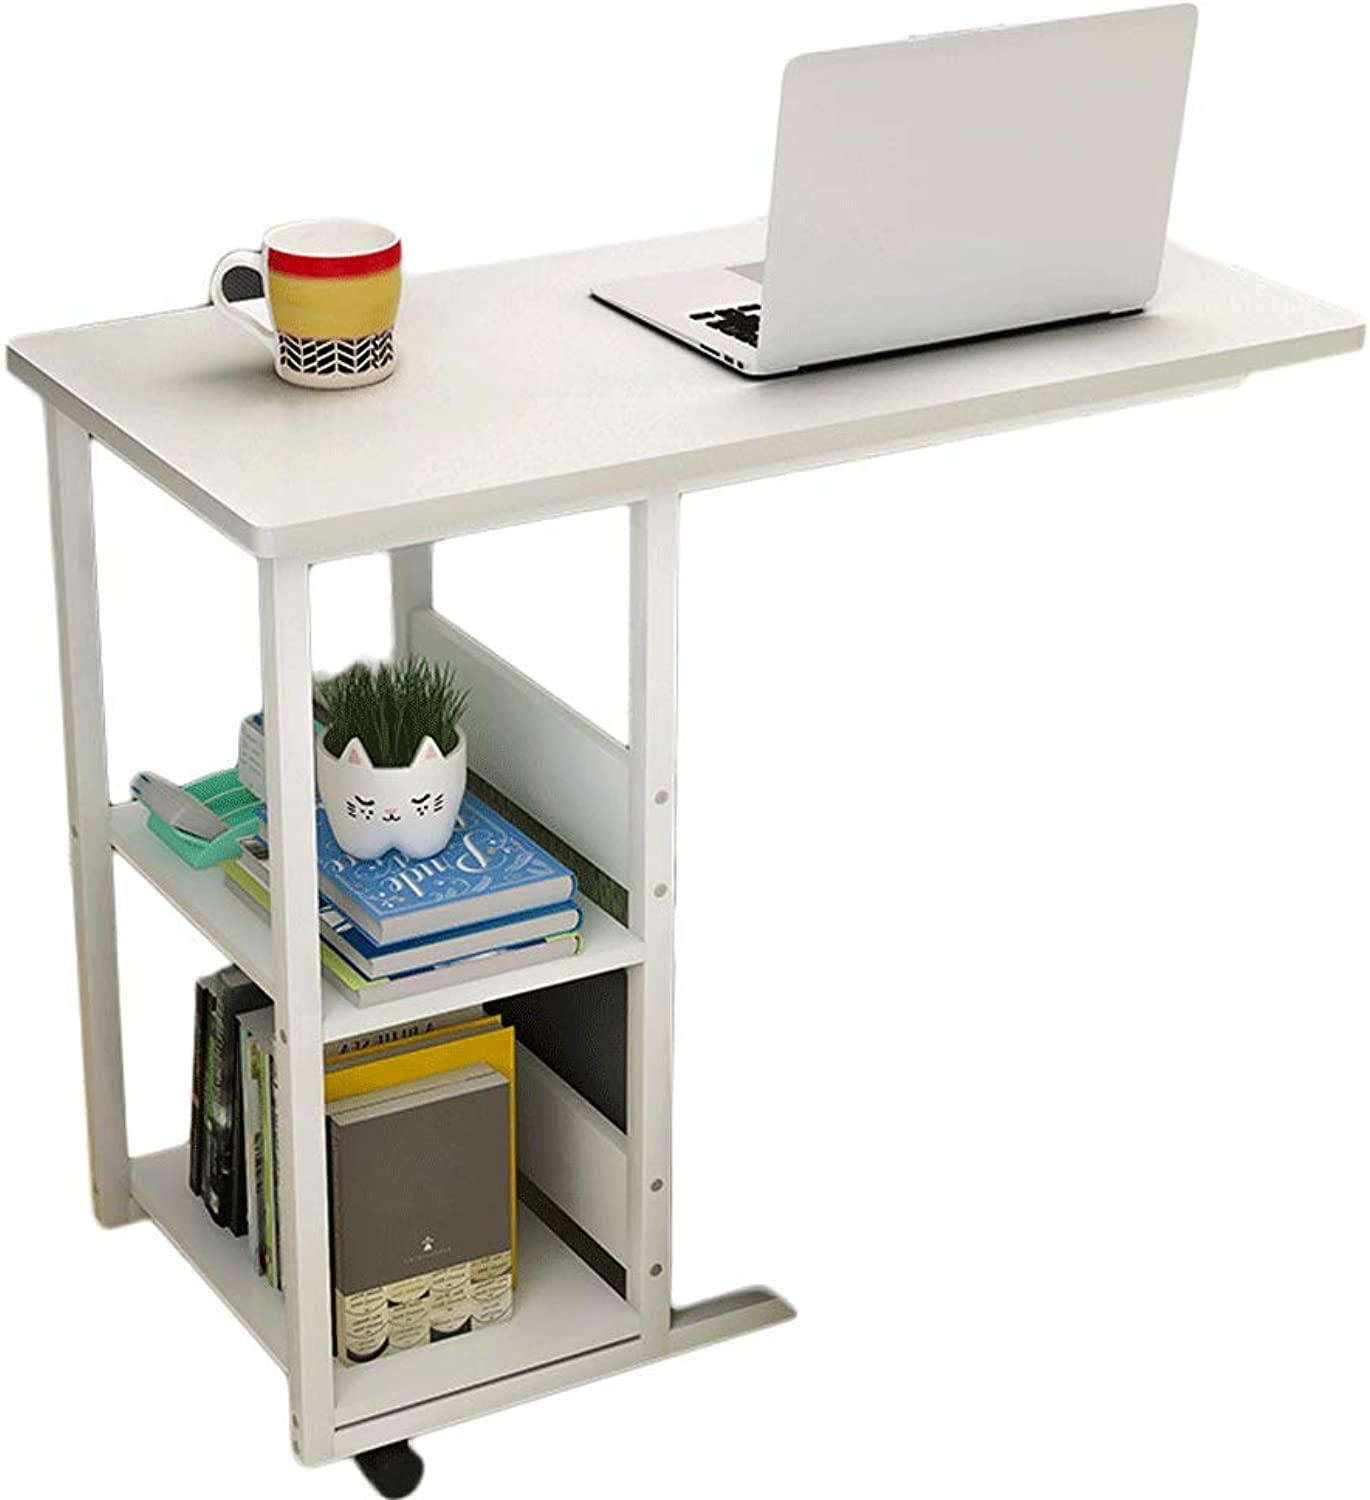 Laptop Lazy Bed Desk Simple Small Table Bedroom Student Home Simple Removable Storage Bedside Table, Coffee Table A+ (color   A3)